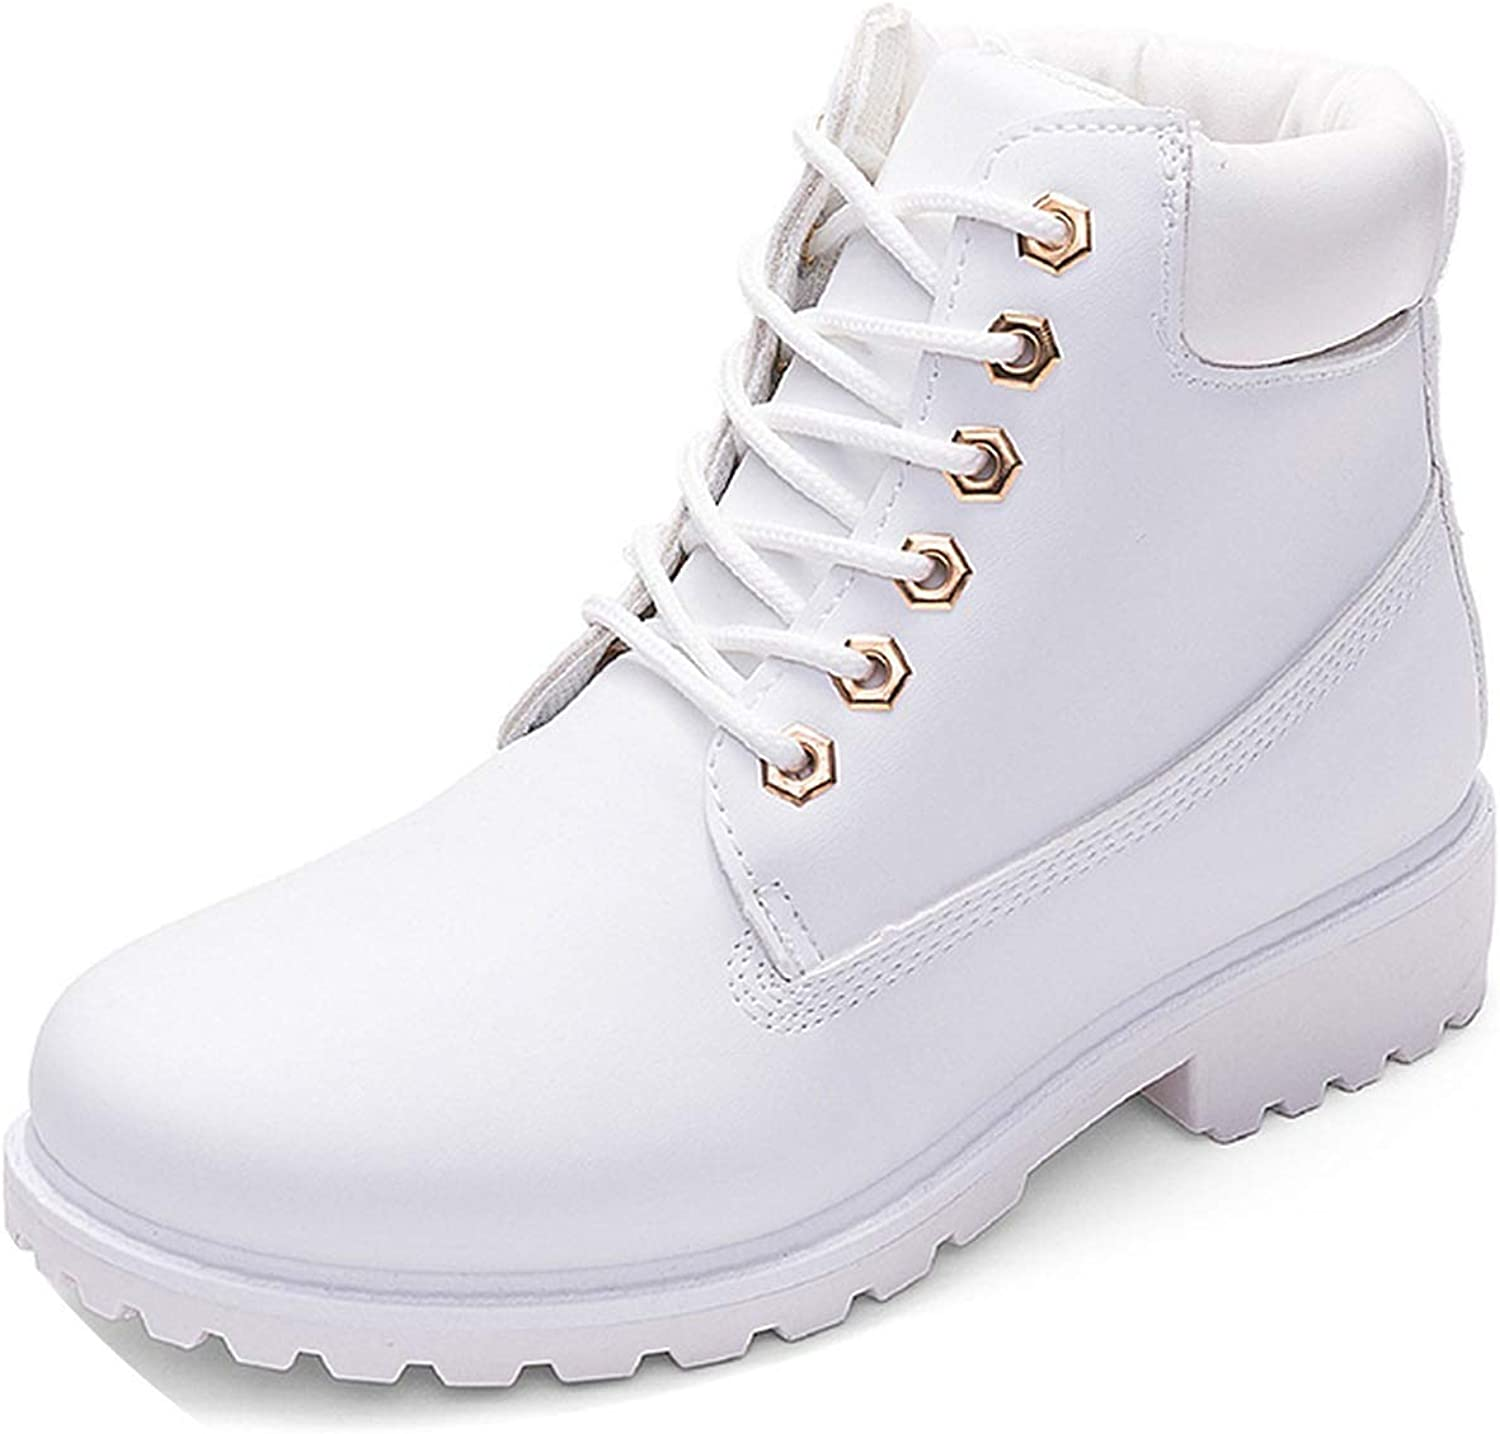 Meet- fashion Women Ankle Boots Woman Snow Boots for Girls Ladies Work shoes Plus Size 36-41